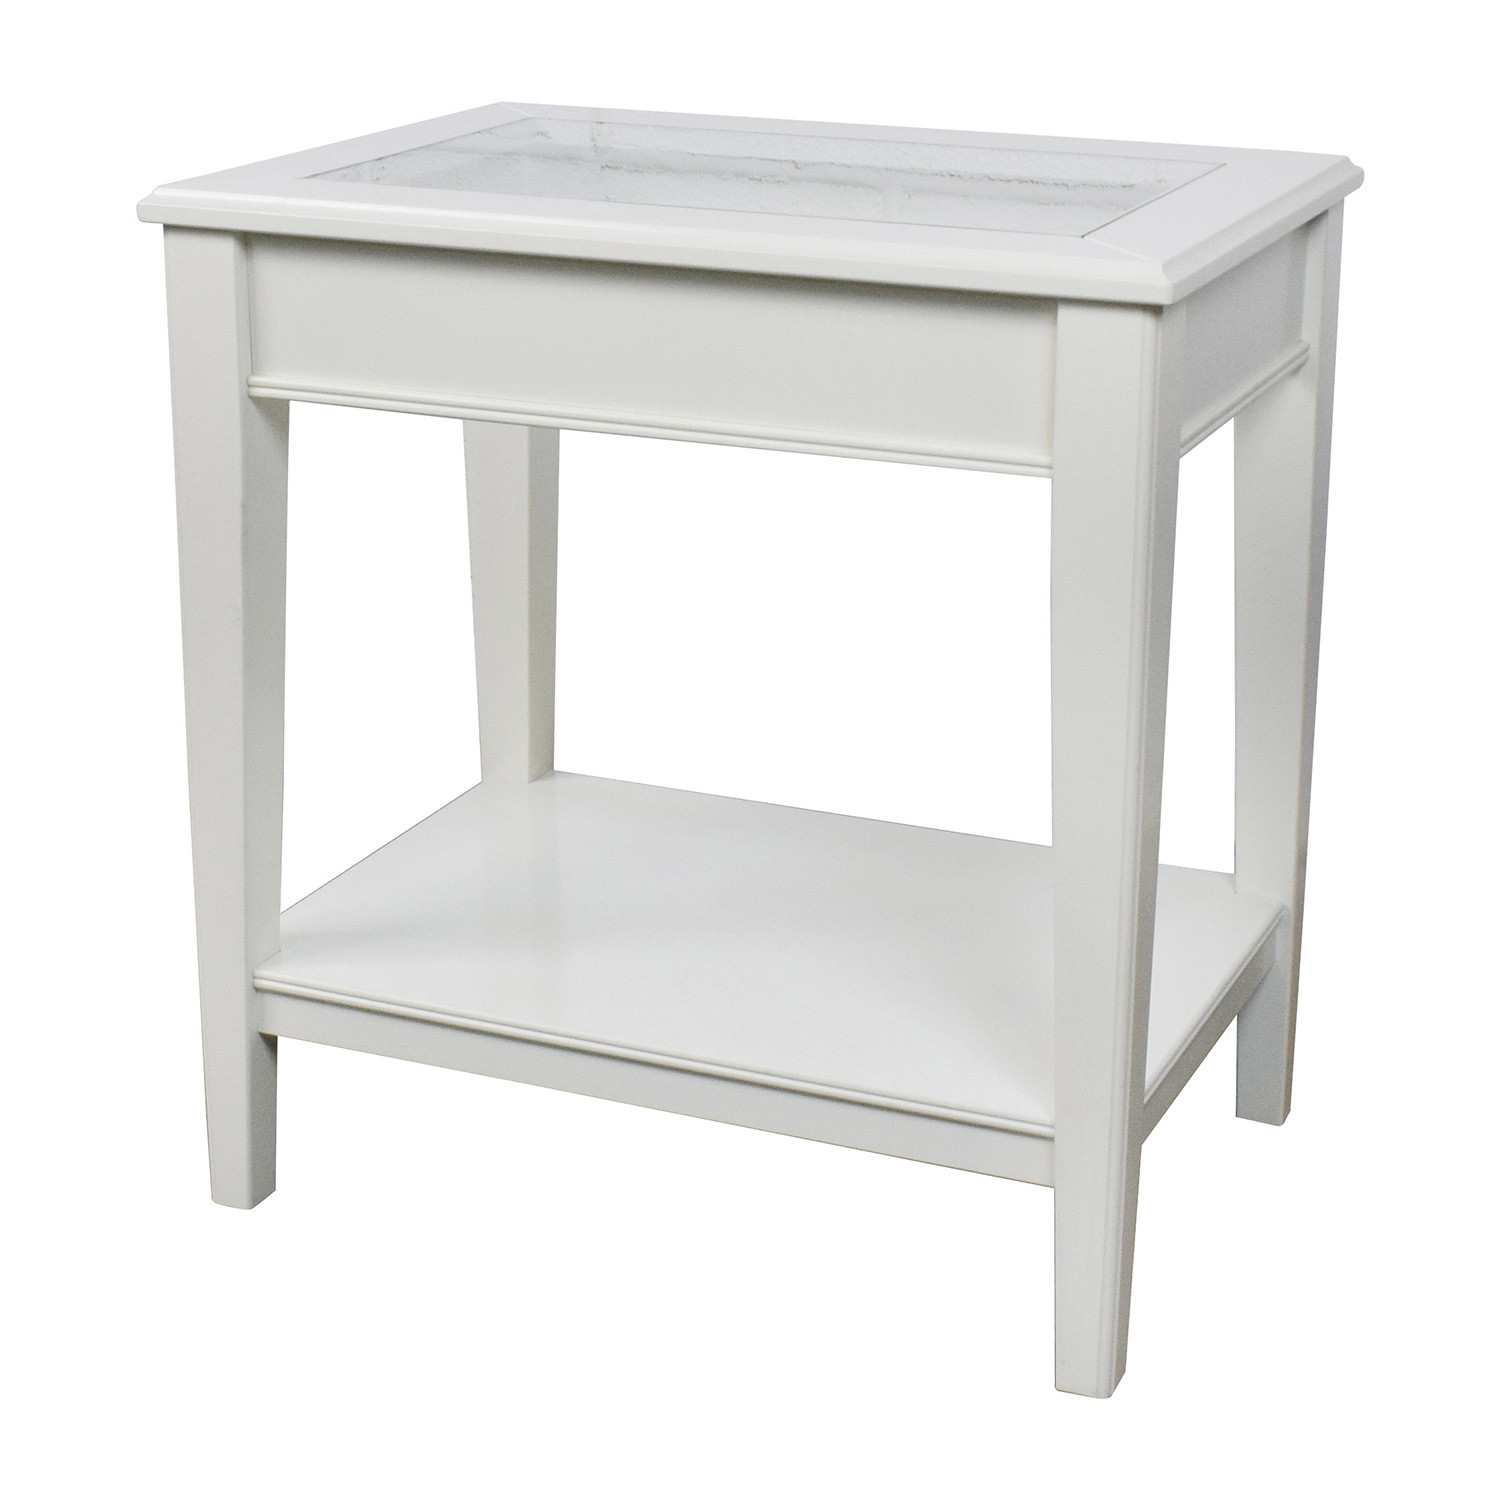 attractive off white end tables for safavieh greta accent unique west elm glass and wood side table modern coffee with drawers lamp garden furniture sauder milled cherry pottery